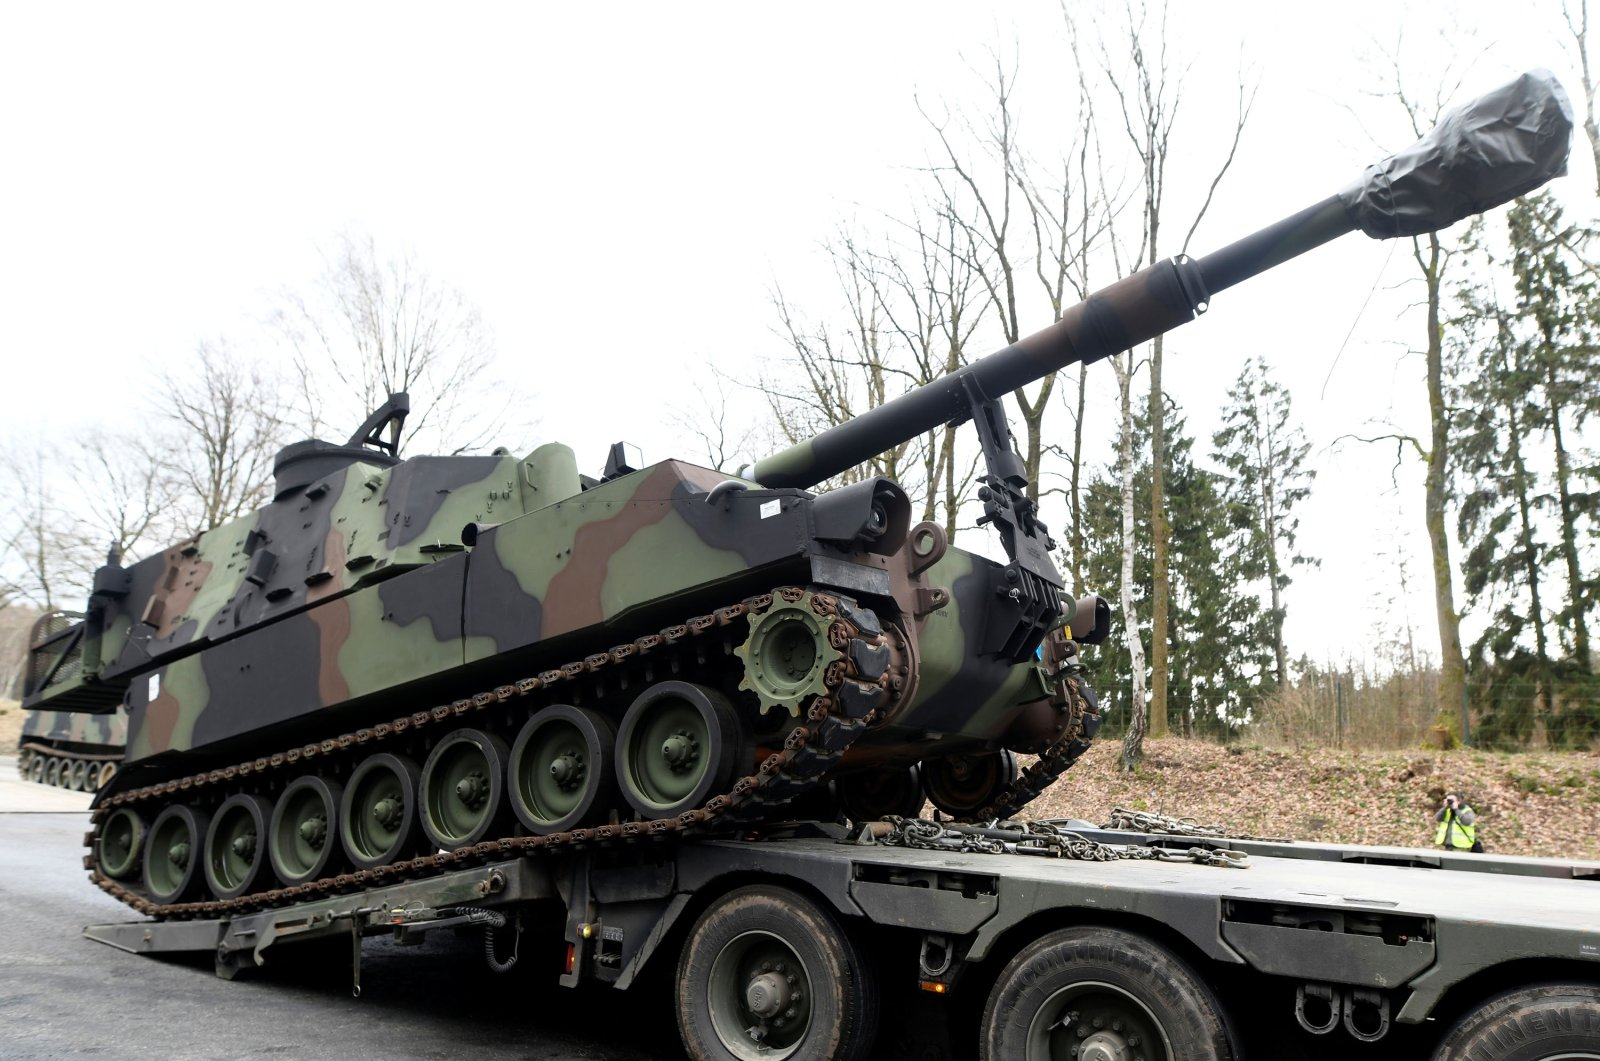 Soldiers of German Army Bundeswehr load a U.S. M109 tank onto a heavy goods transporter during preparations for the Defender-Europe 20 international military exercises in Bergen Hohne, Germany, Feb. 12, 2020. (Reuters Photo)